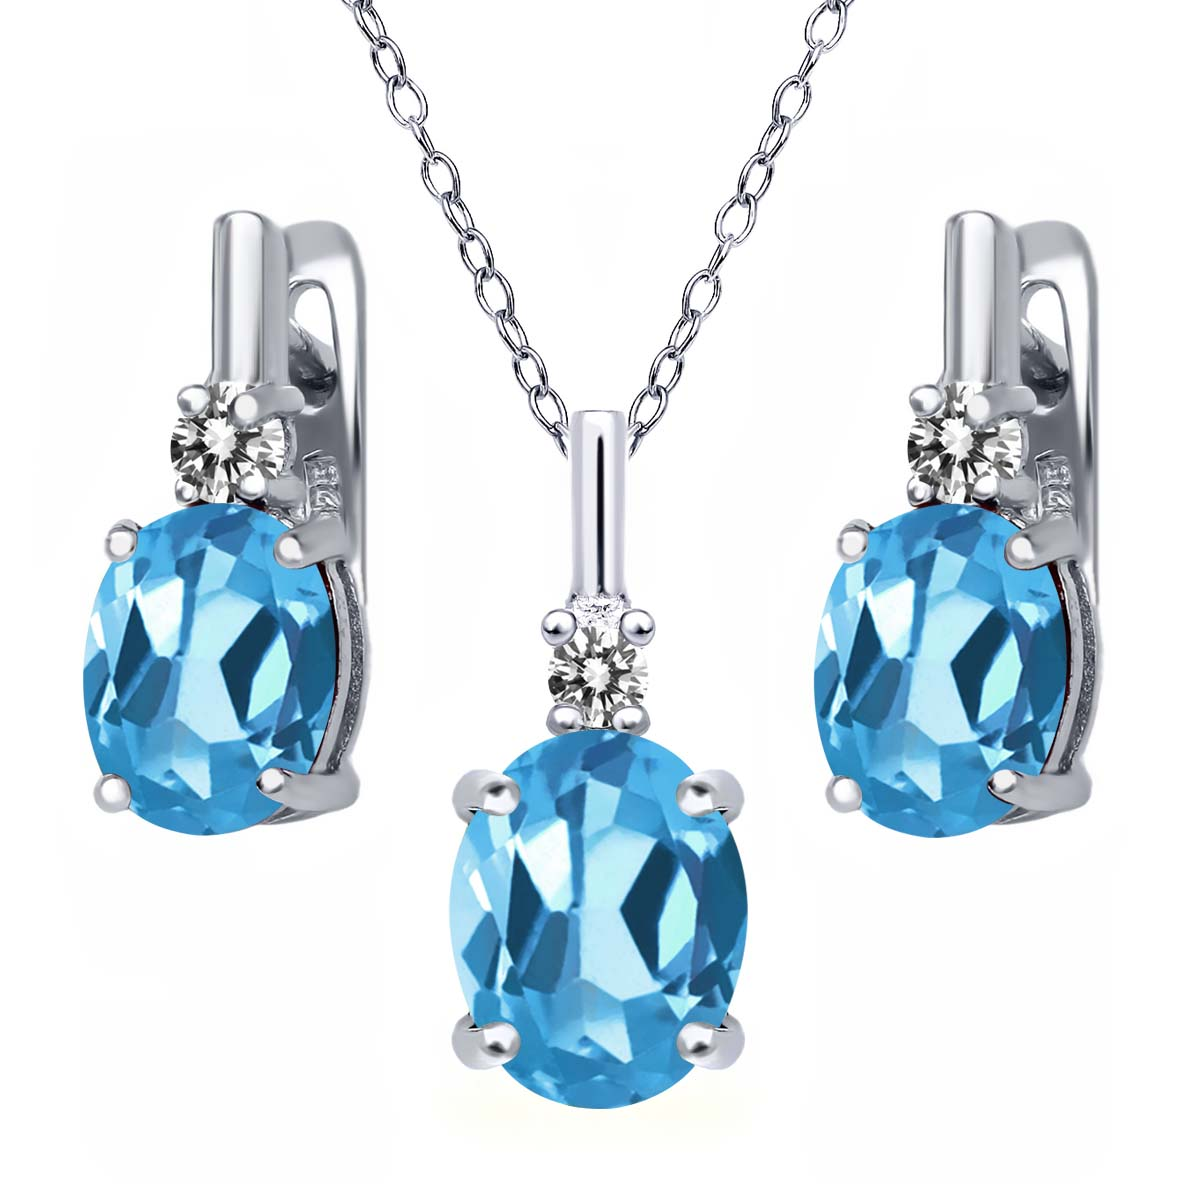 6.67 Ct Swiss Blue Topaz White Diamond 925 Sterling Silver Pendant Earrings Set by